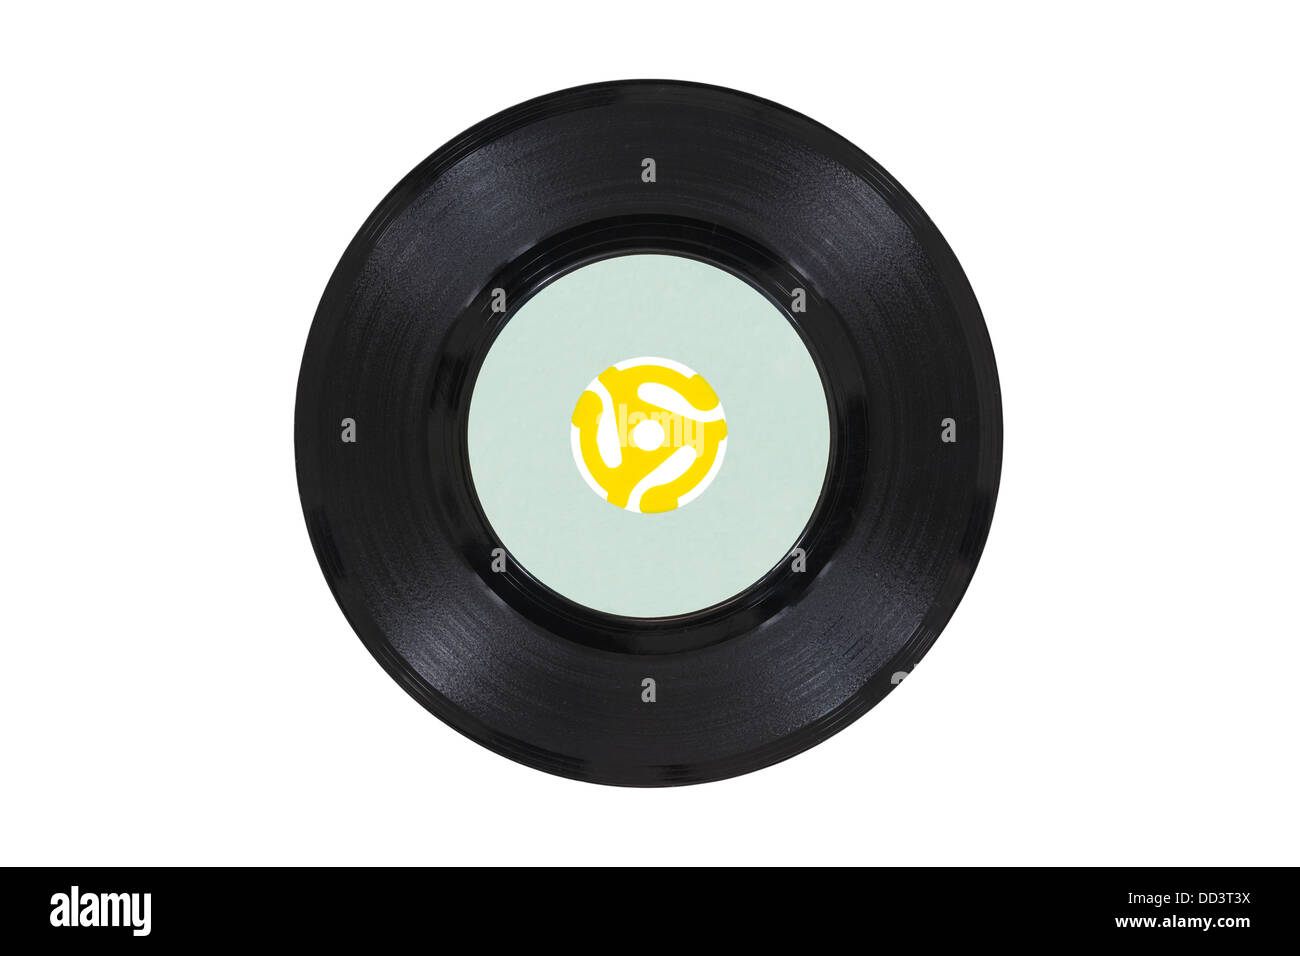 Vintage 45 rpm vinyl phonograph with yellow record player adapter. - Stock Image